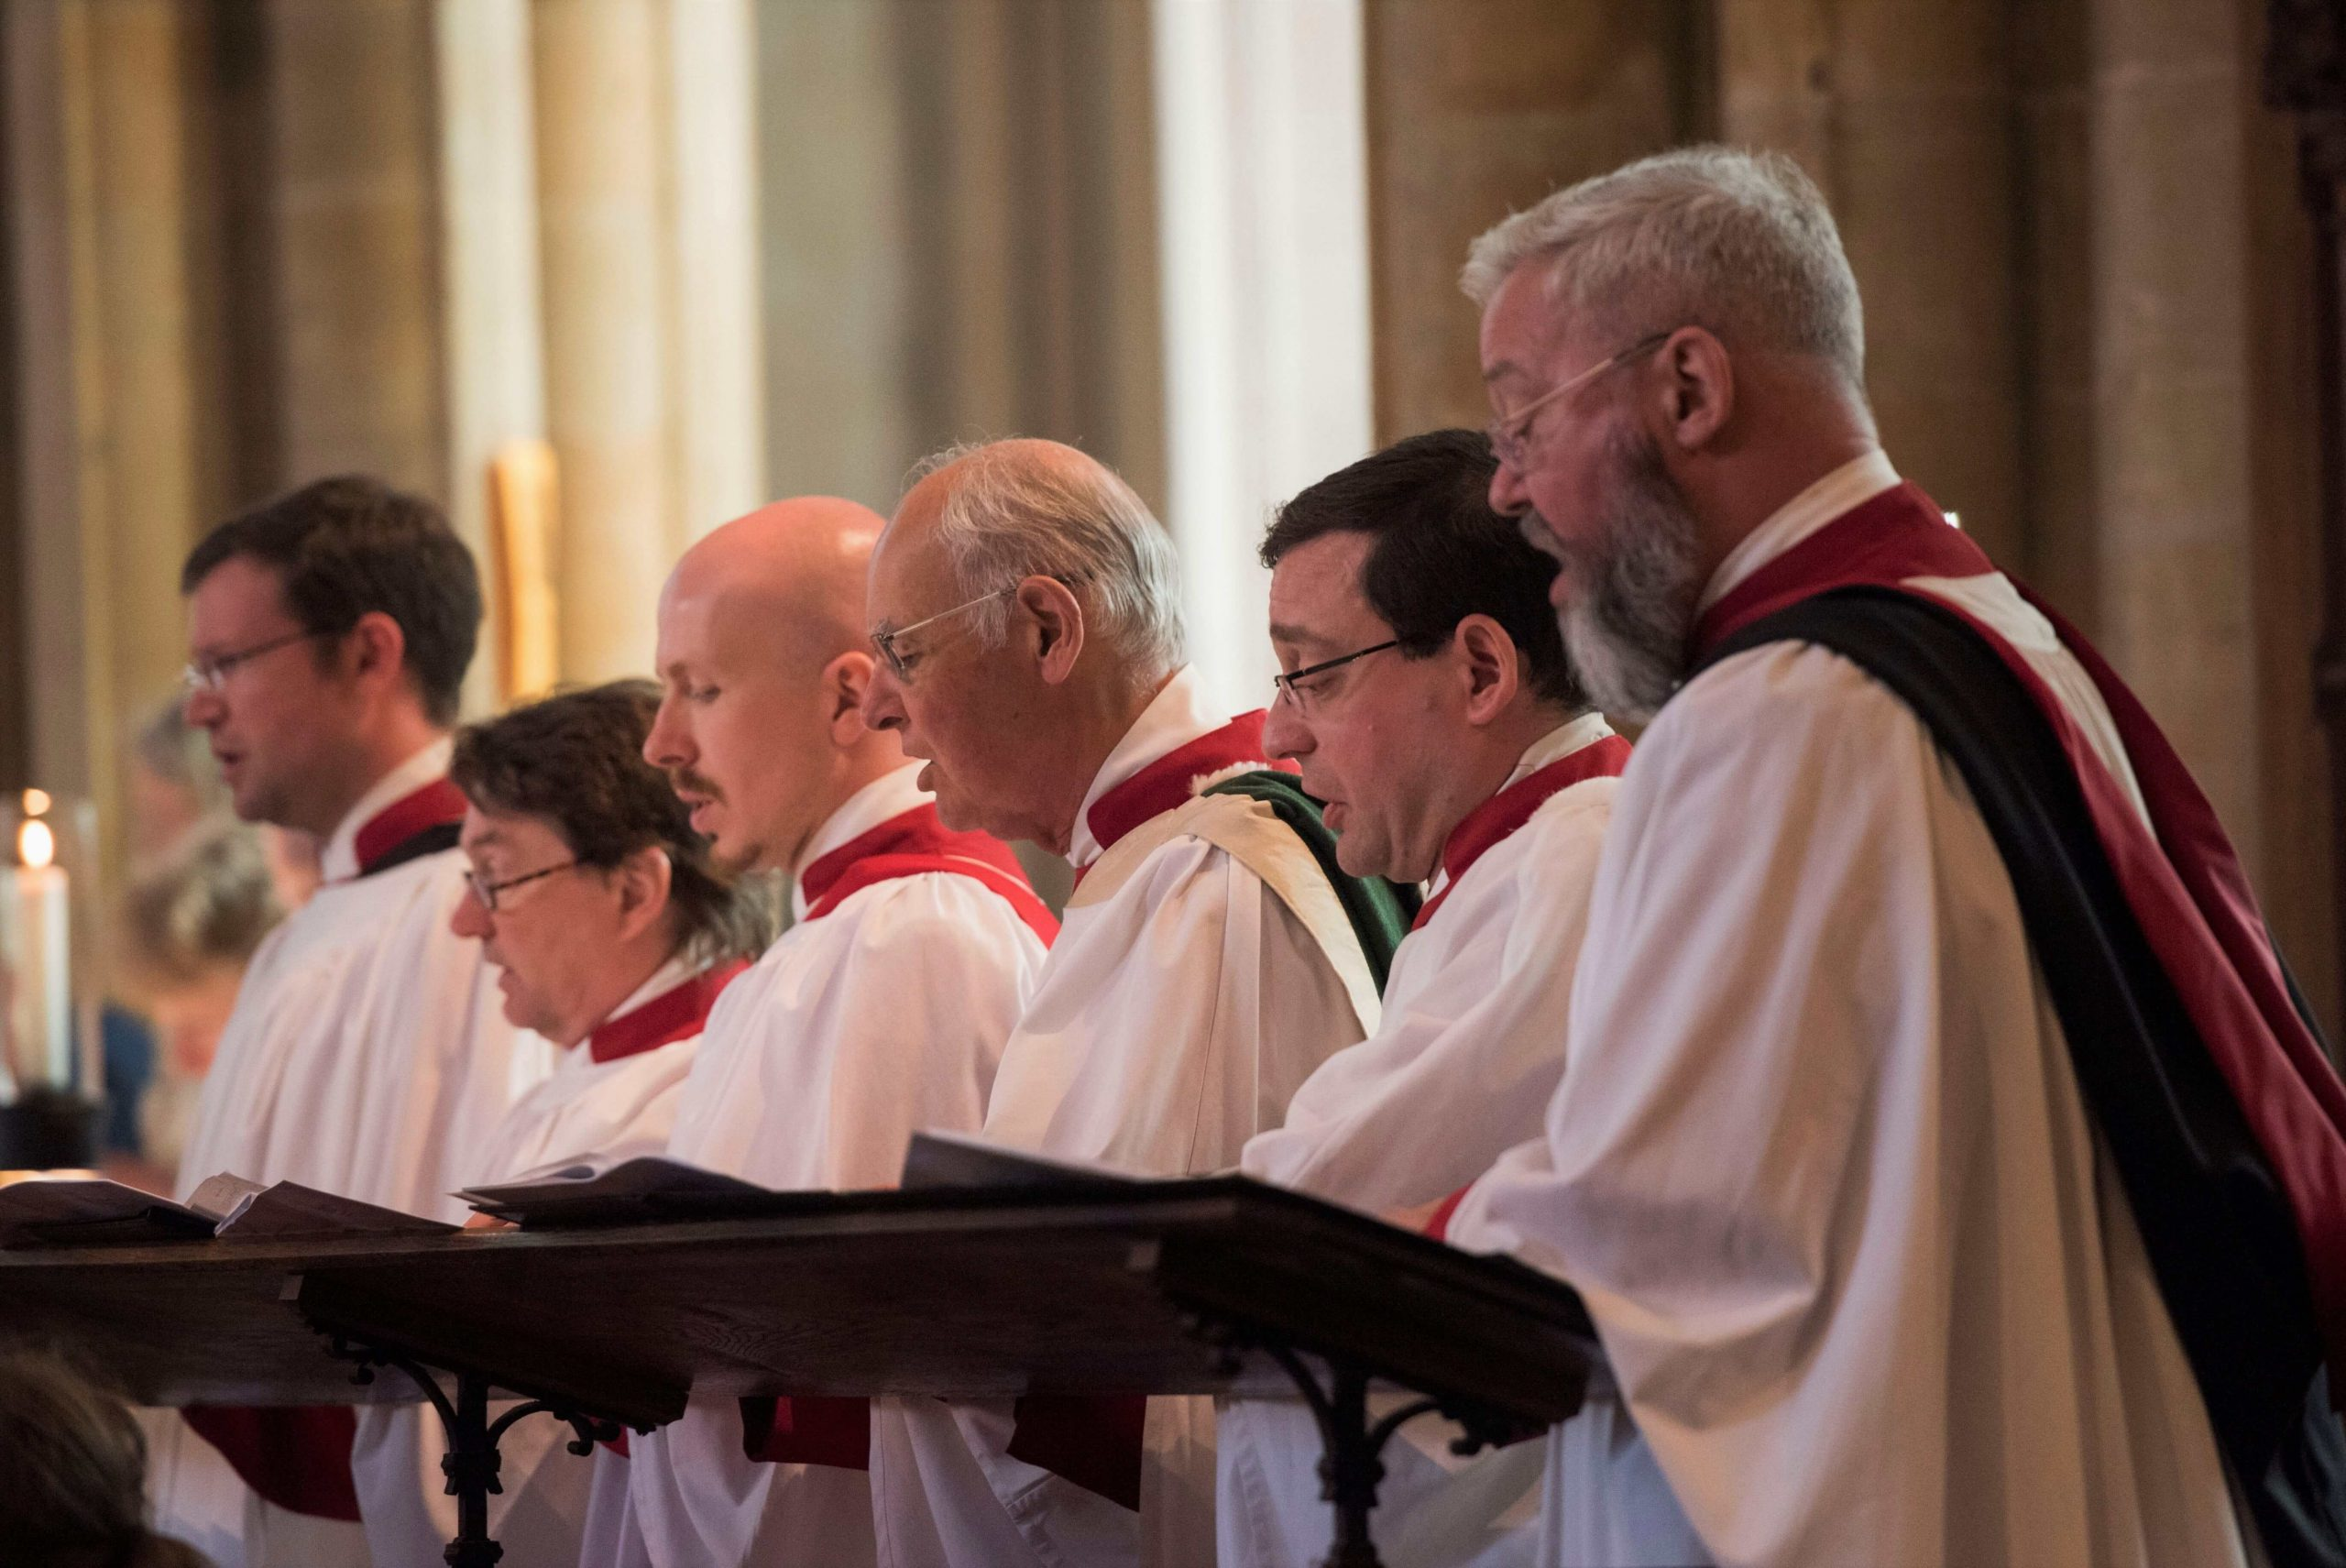 Singing returns to Southwell Minster